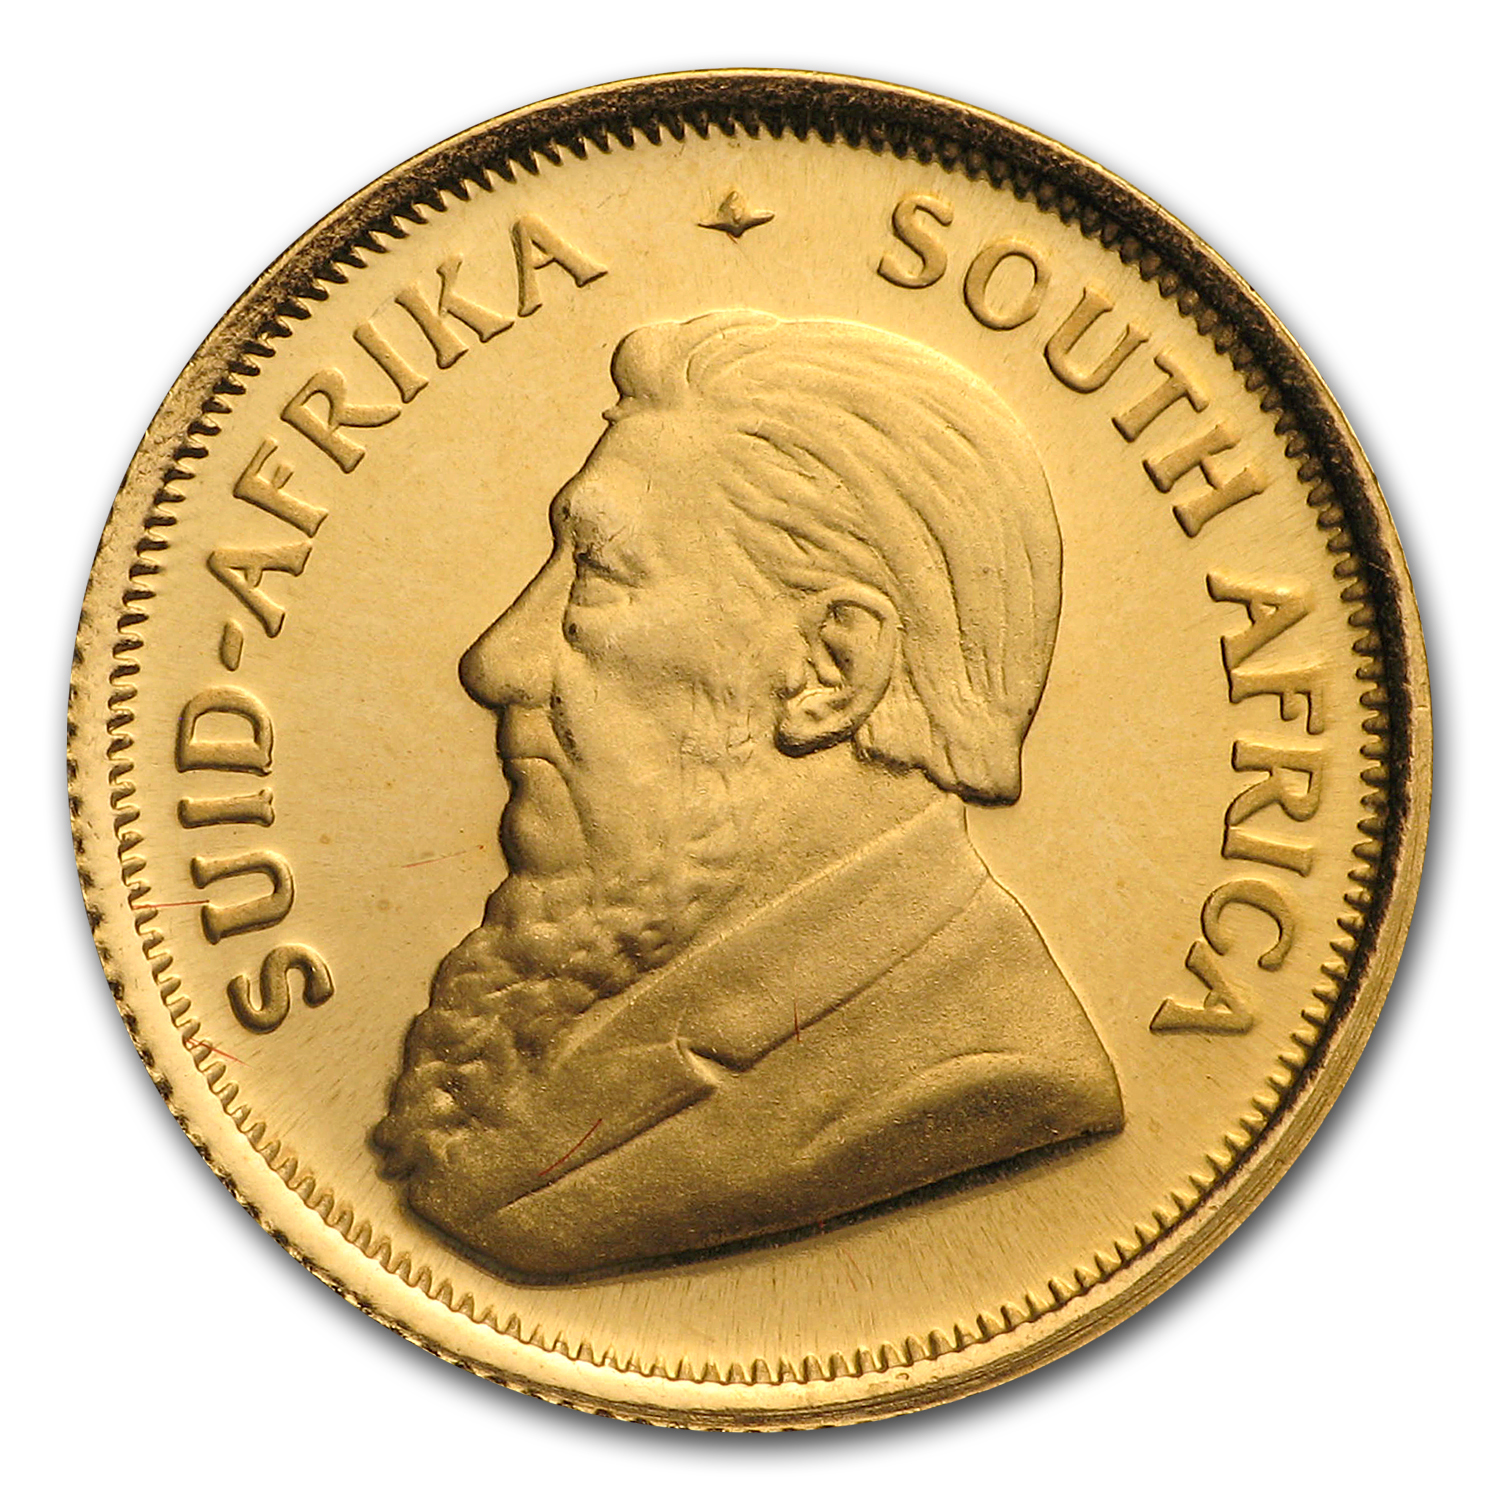 1982 1/10 oz Gold South African Krugerrand (Proof)